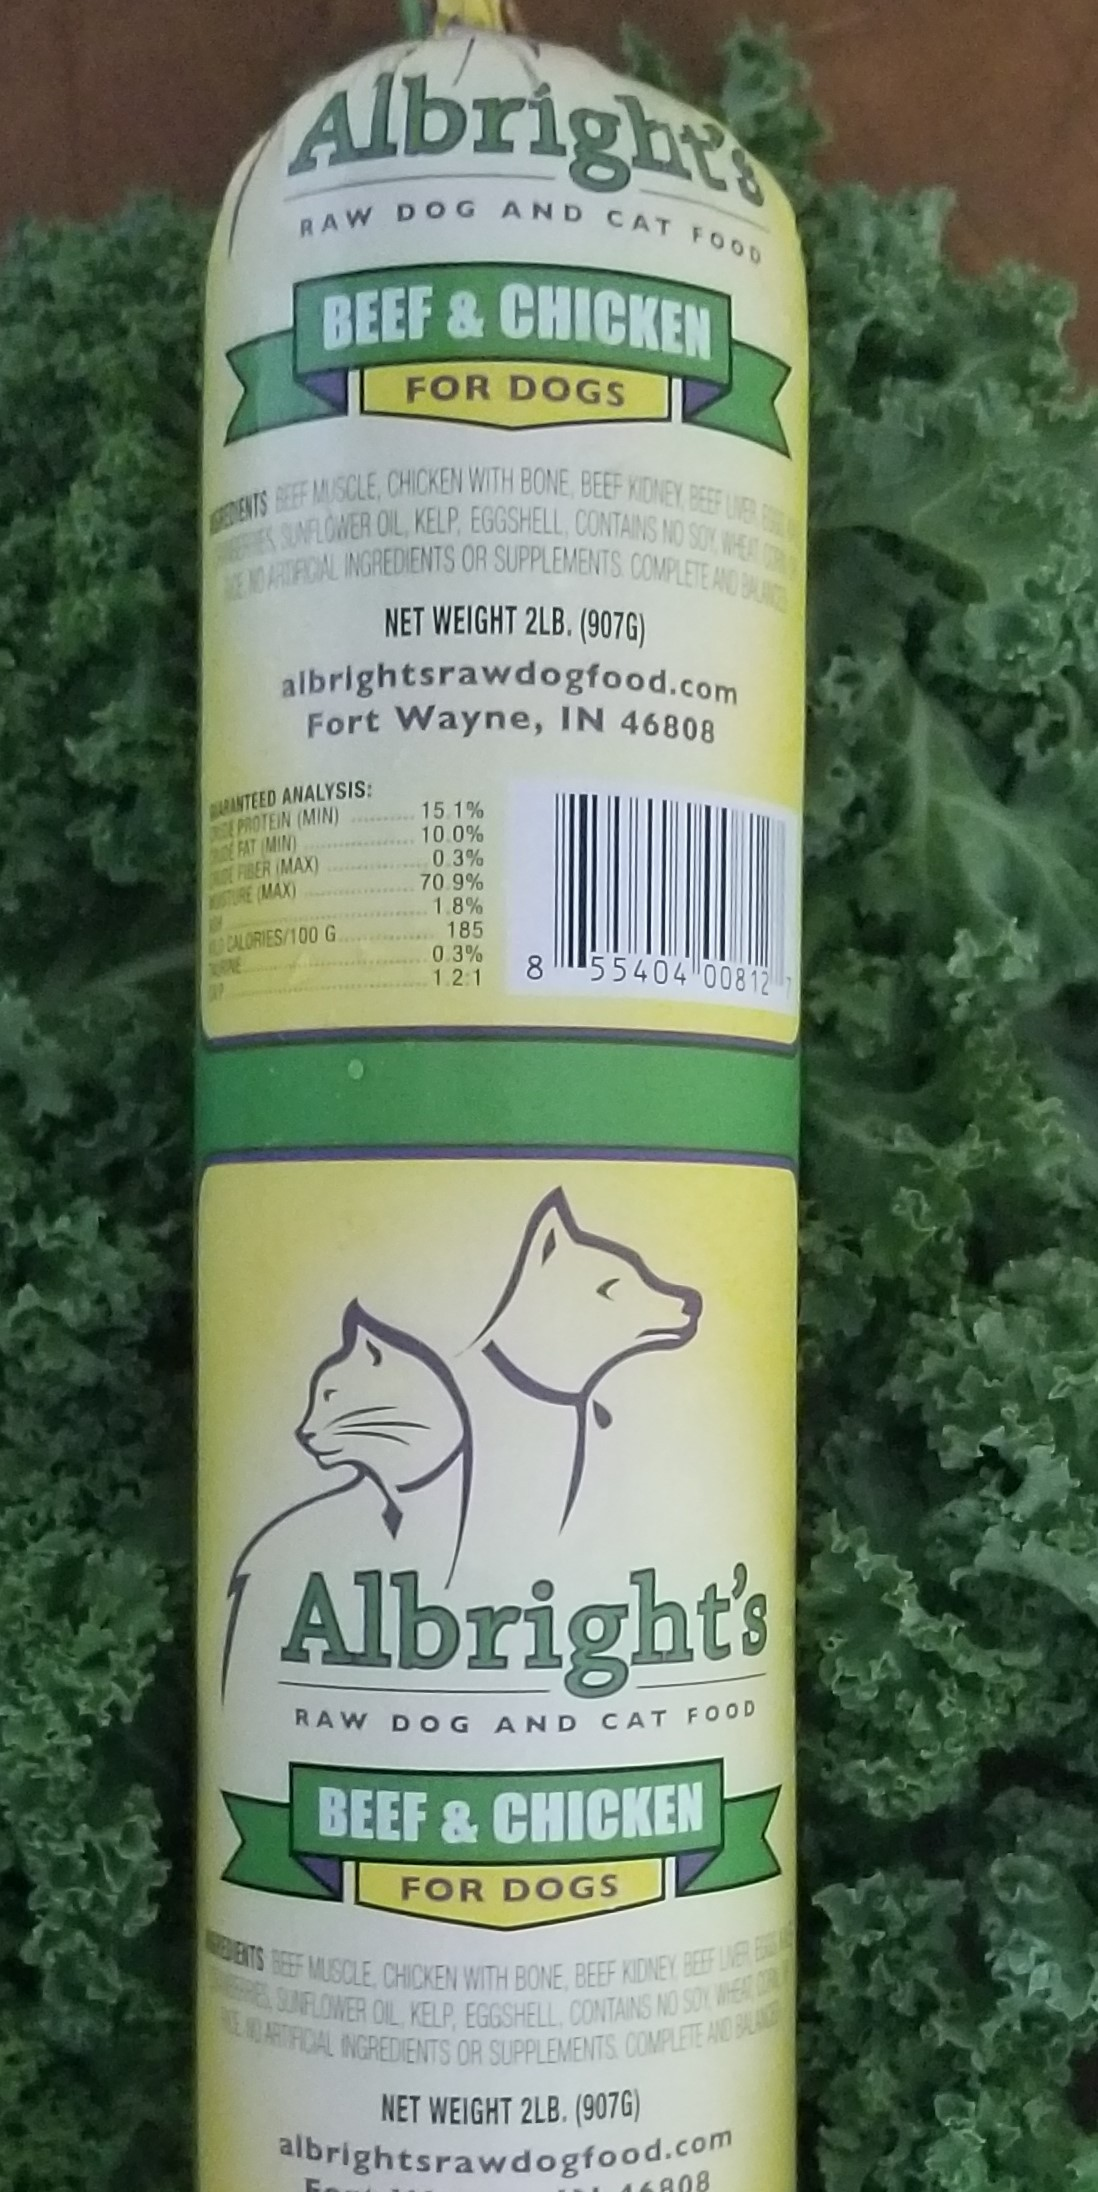 Albright's Beef & Chicken Raw Dog Food, 2-lb chub, case of 16